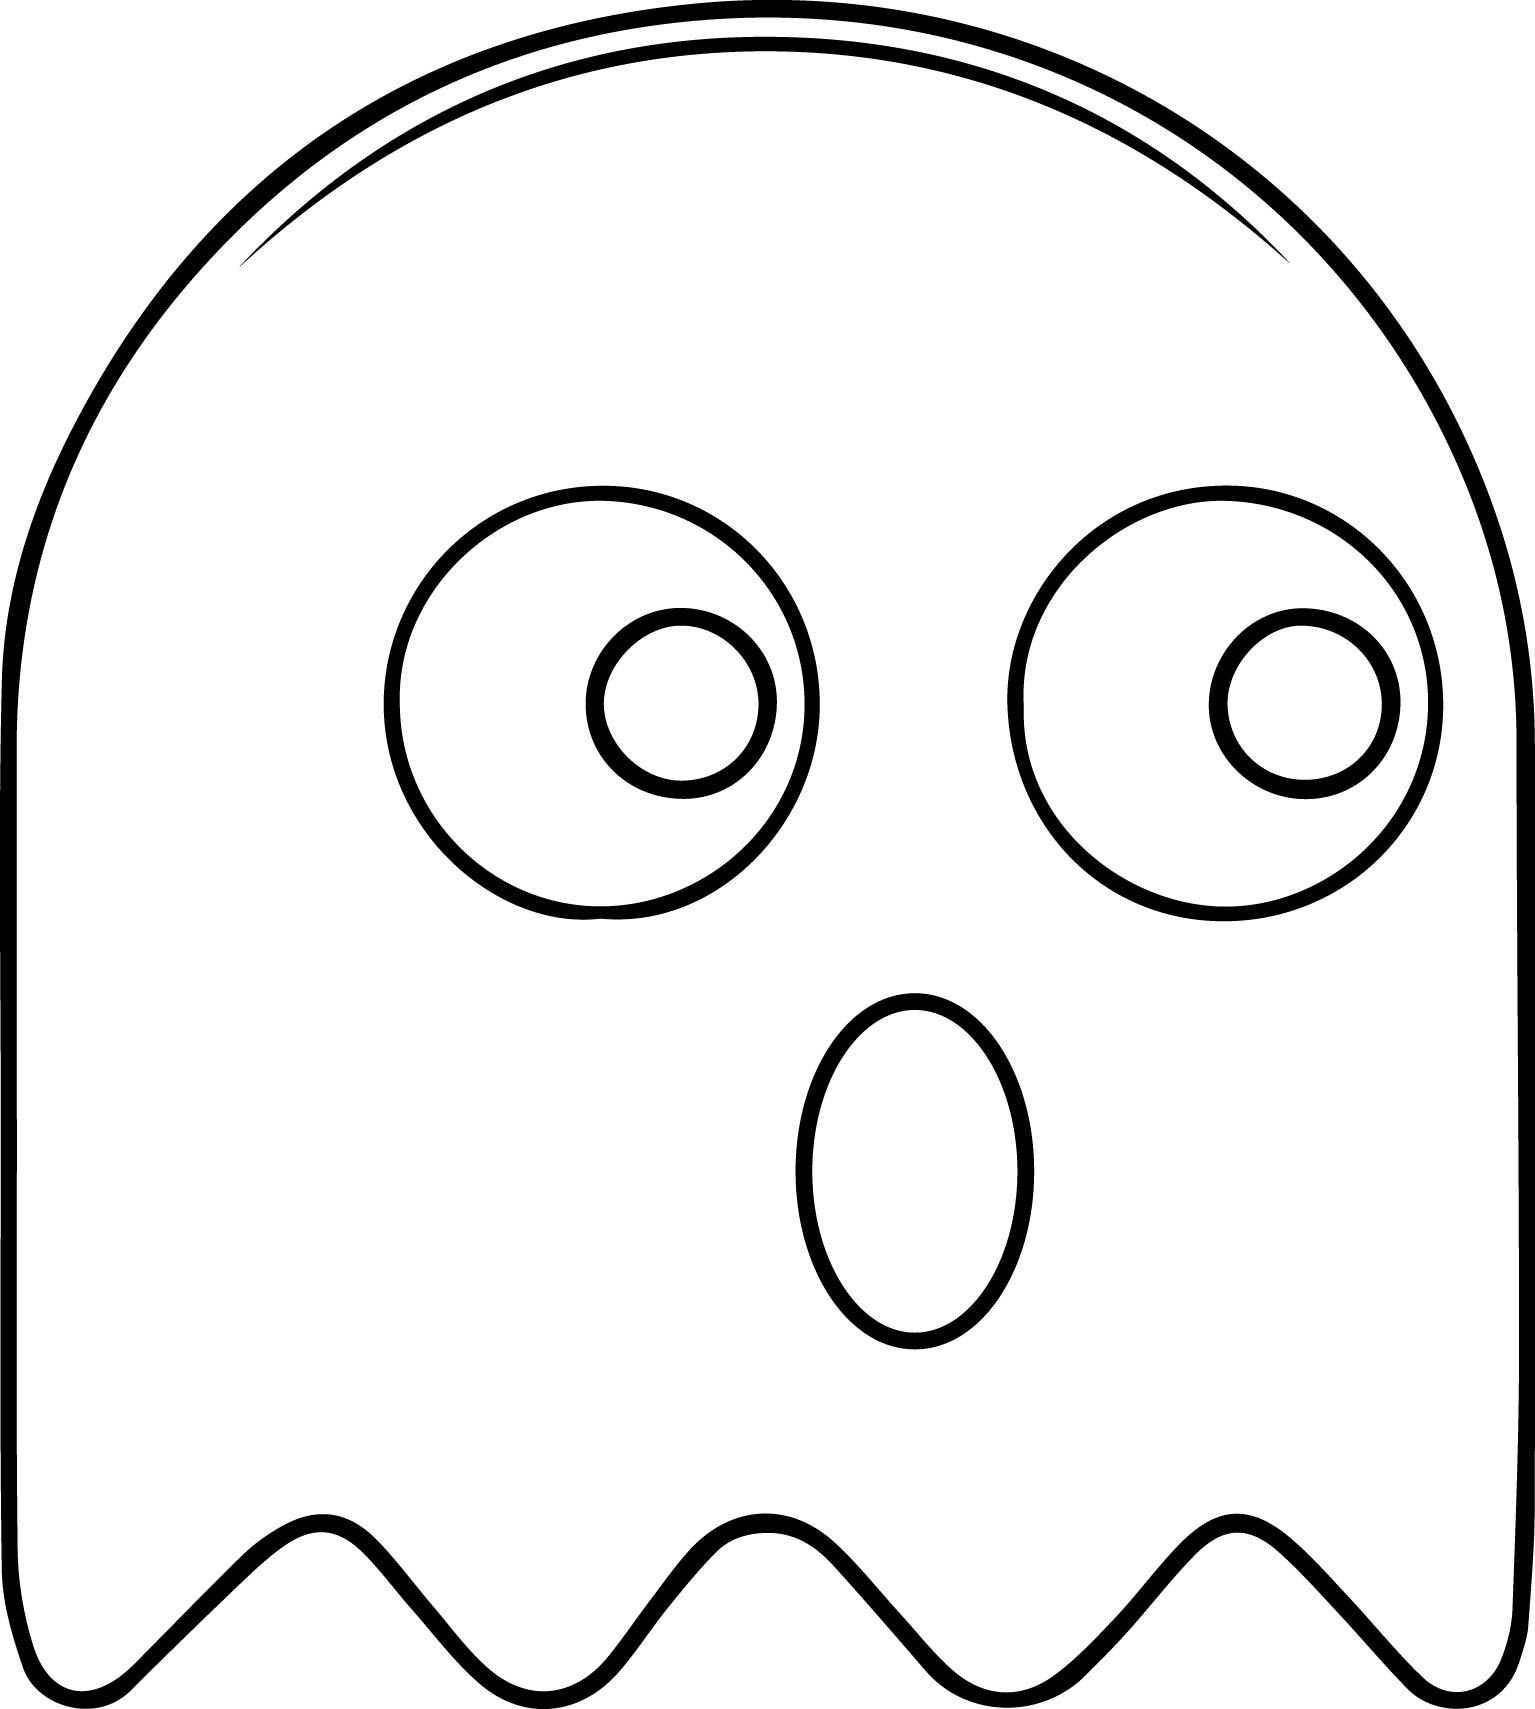 Pacman Coloring Page Wecoloringpage 140